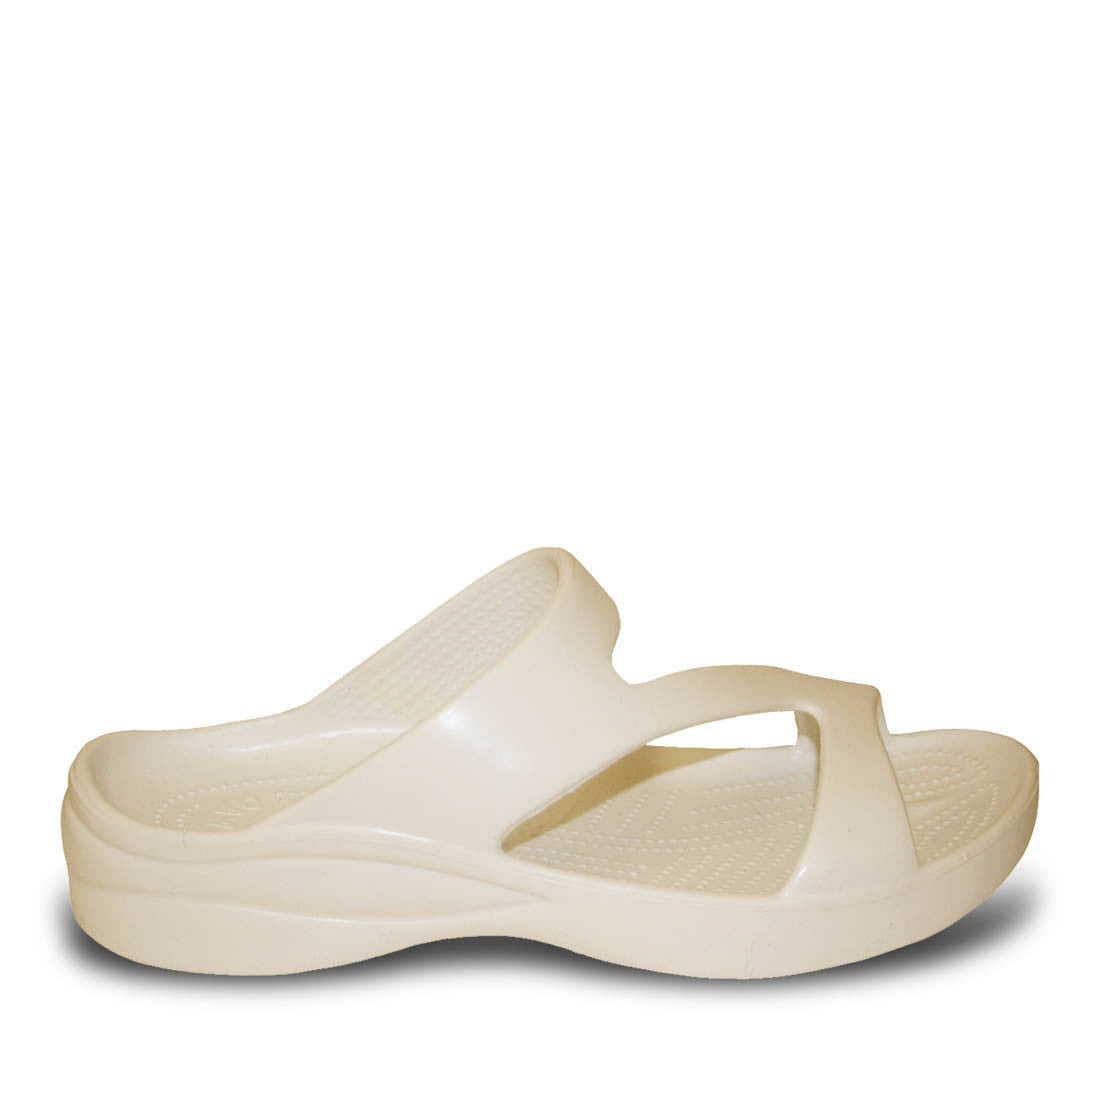 Image of Women's Z Sandals - Tan